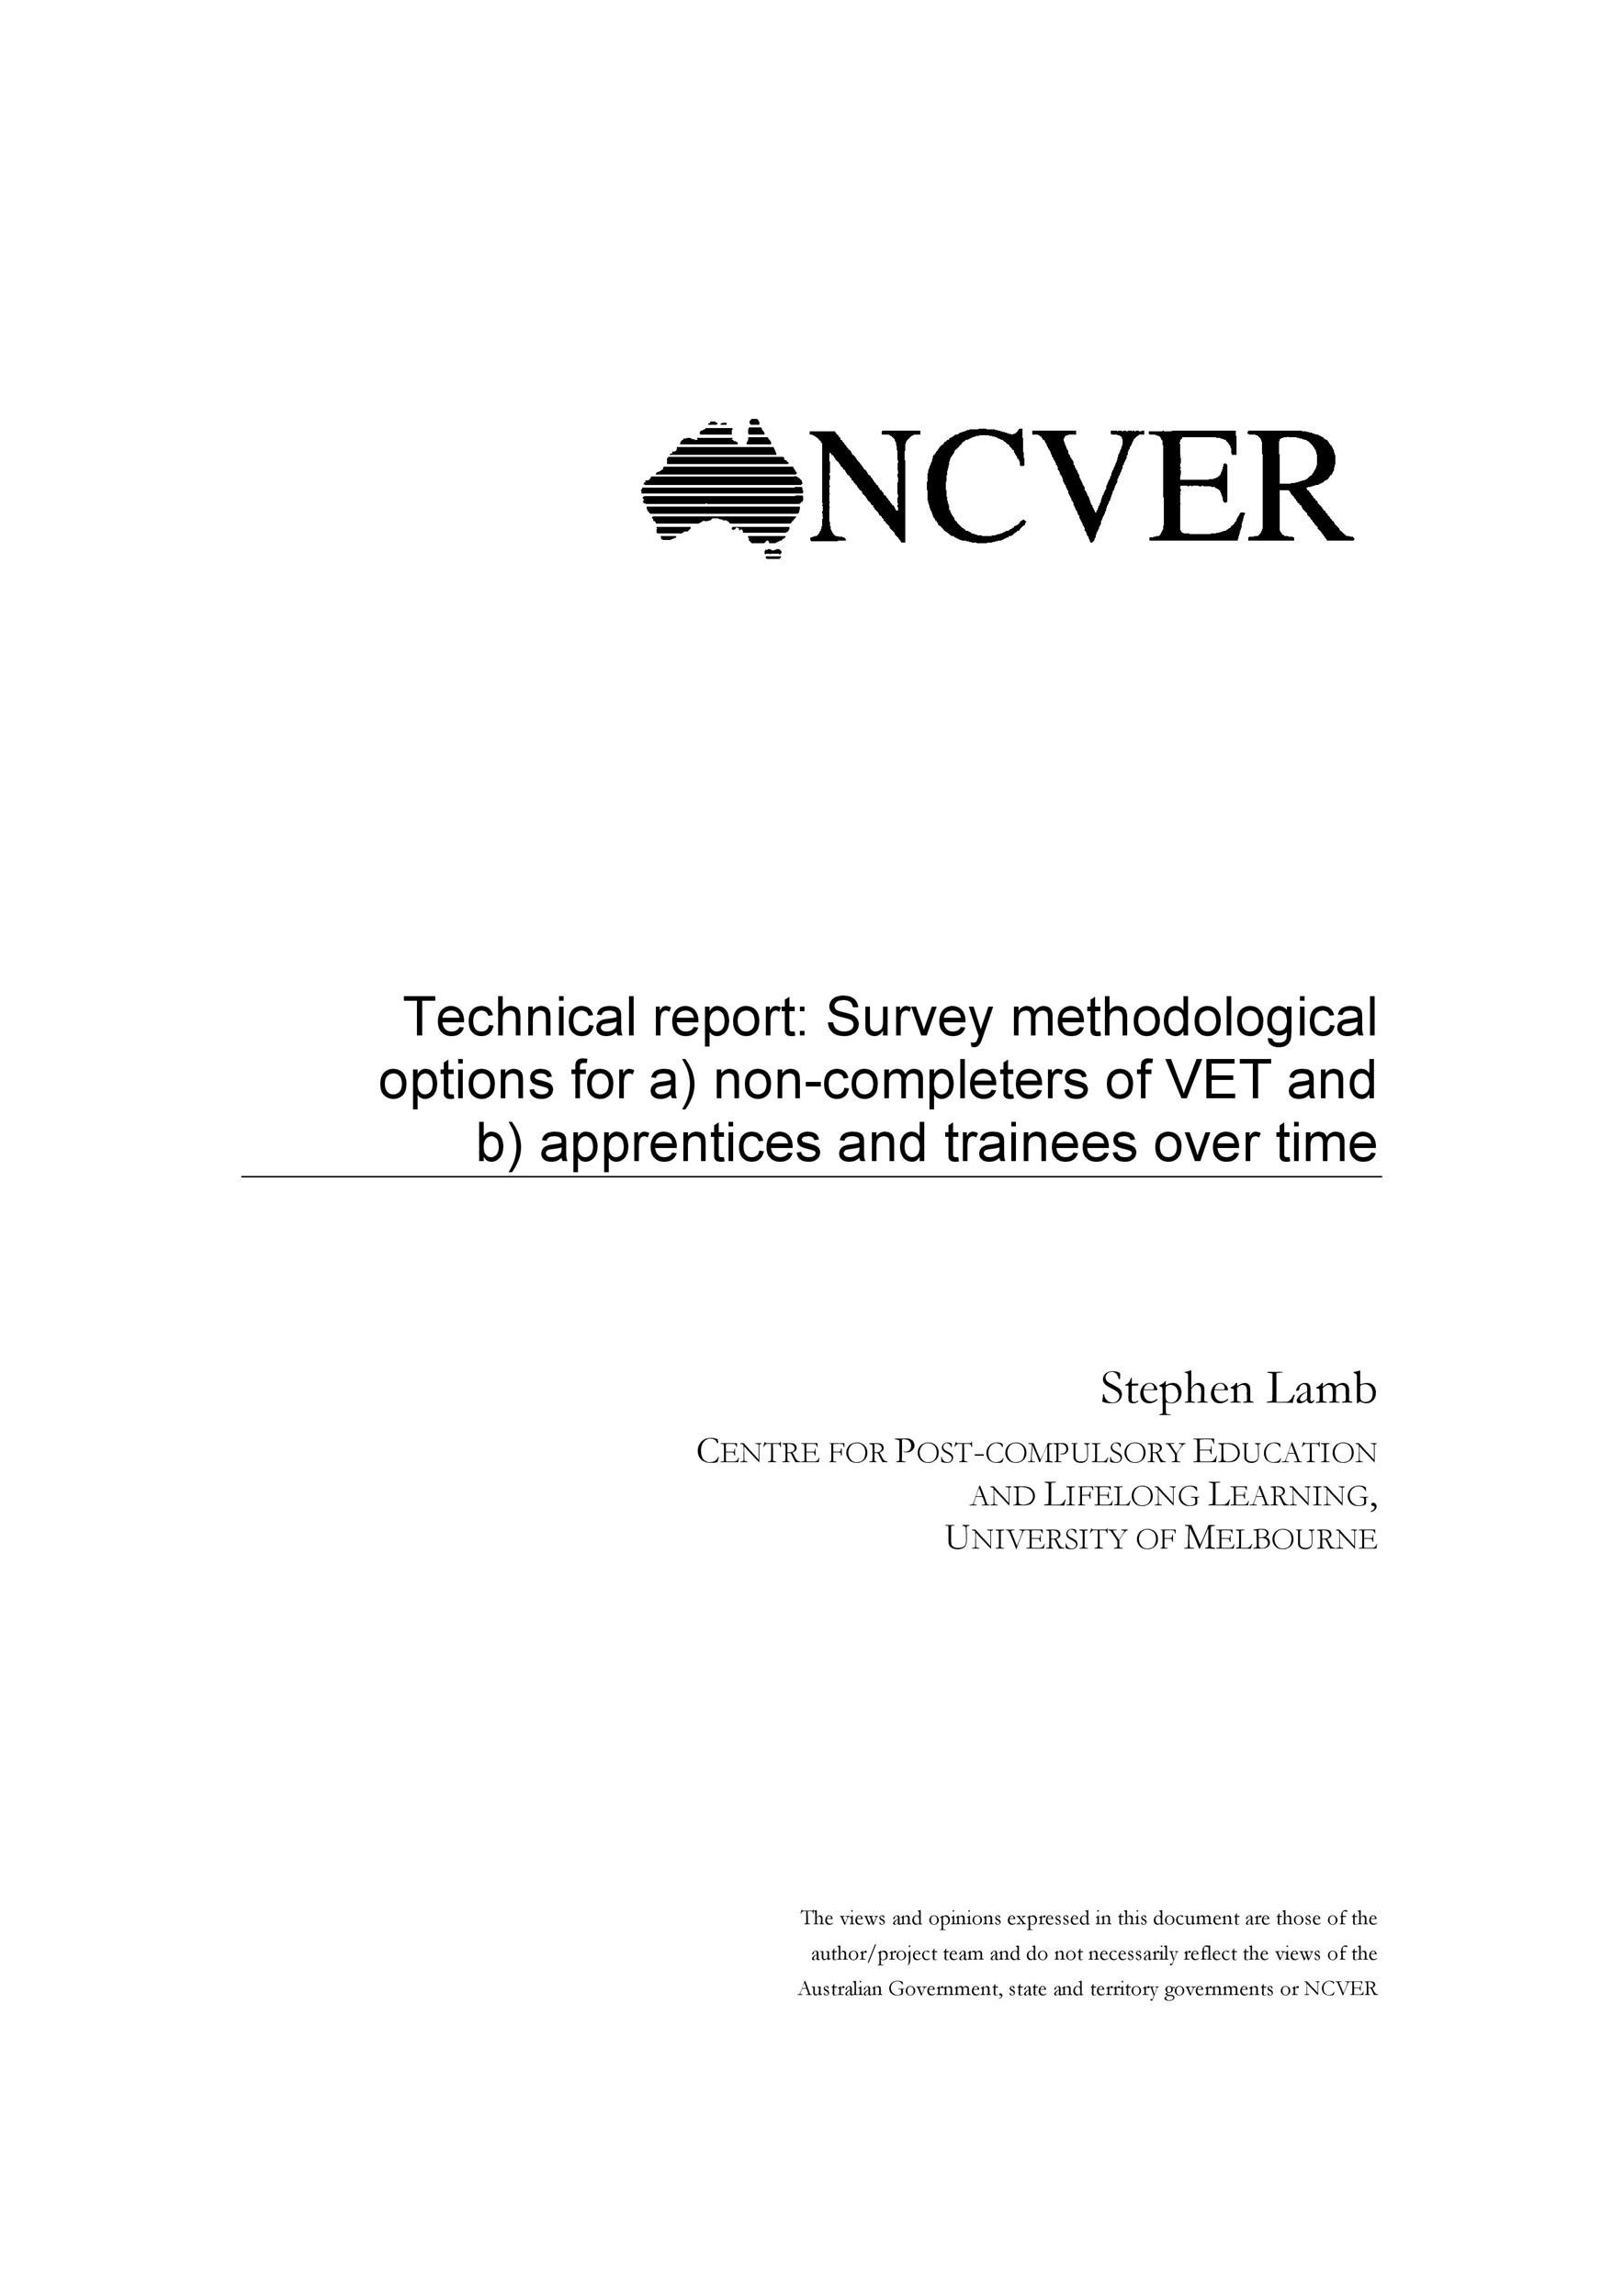 Free technical report template 14